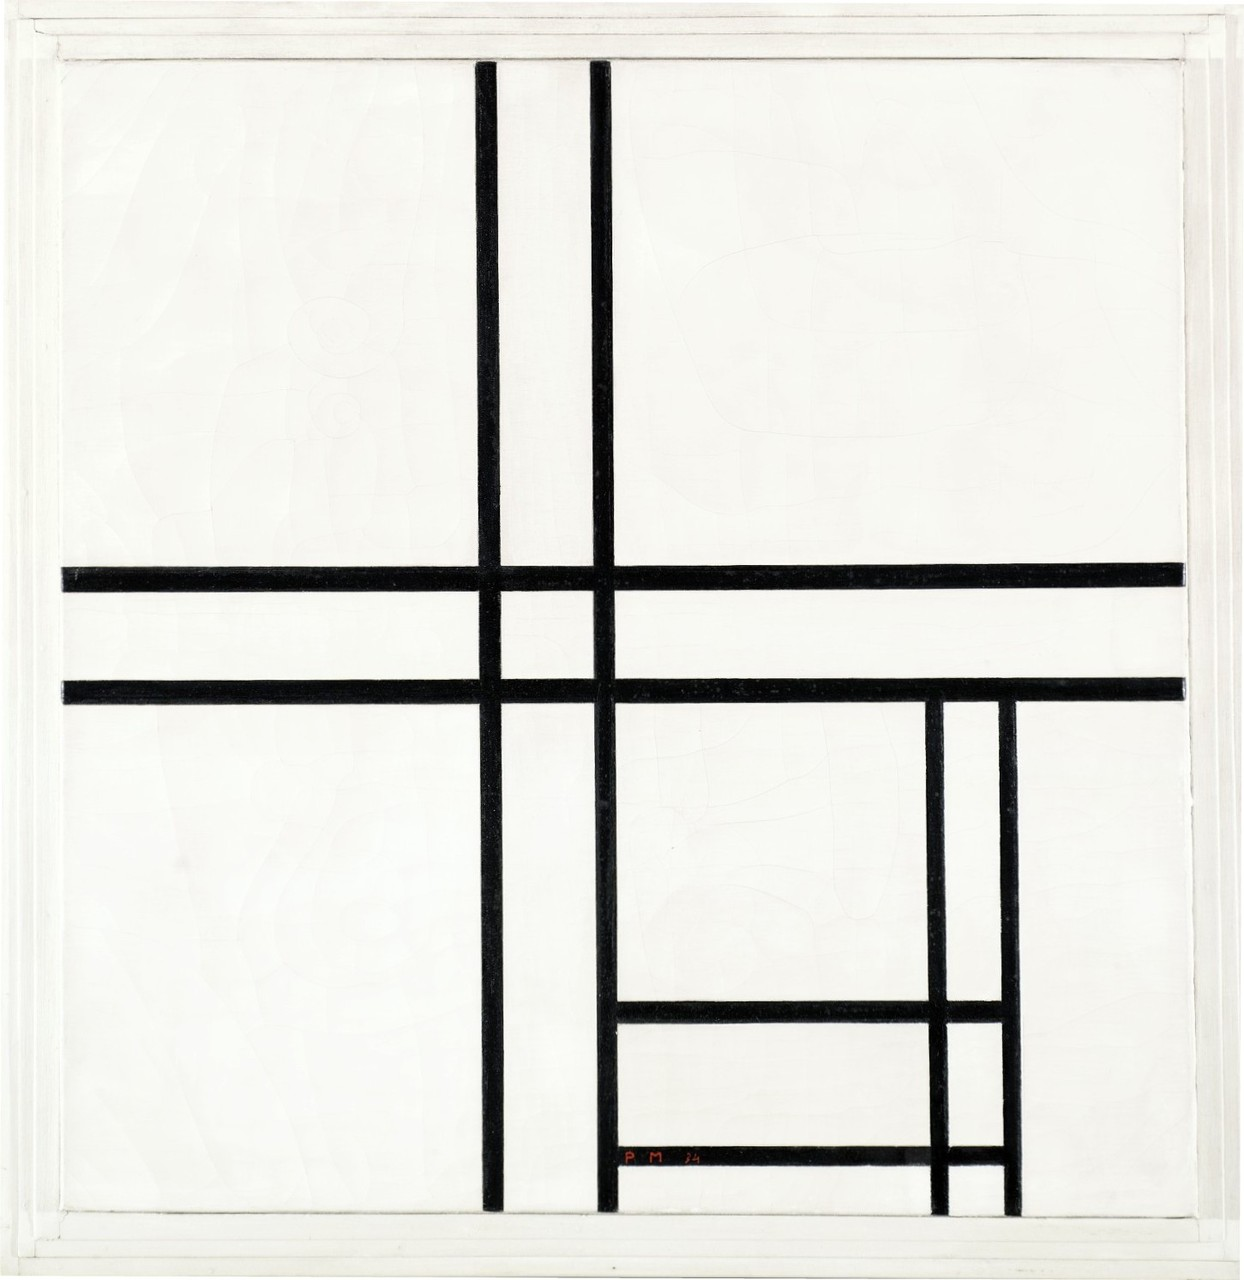 Mondrian art, mondrian abstract art, mondrian black and white